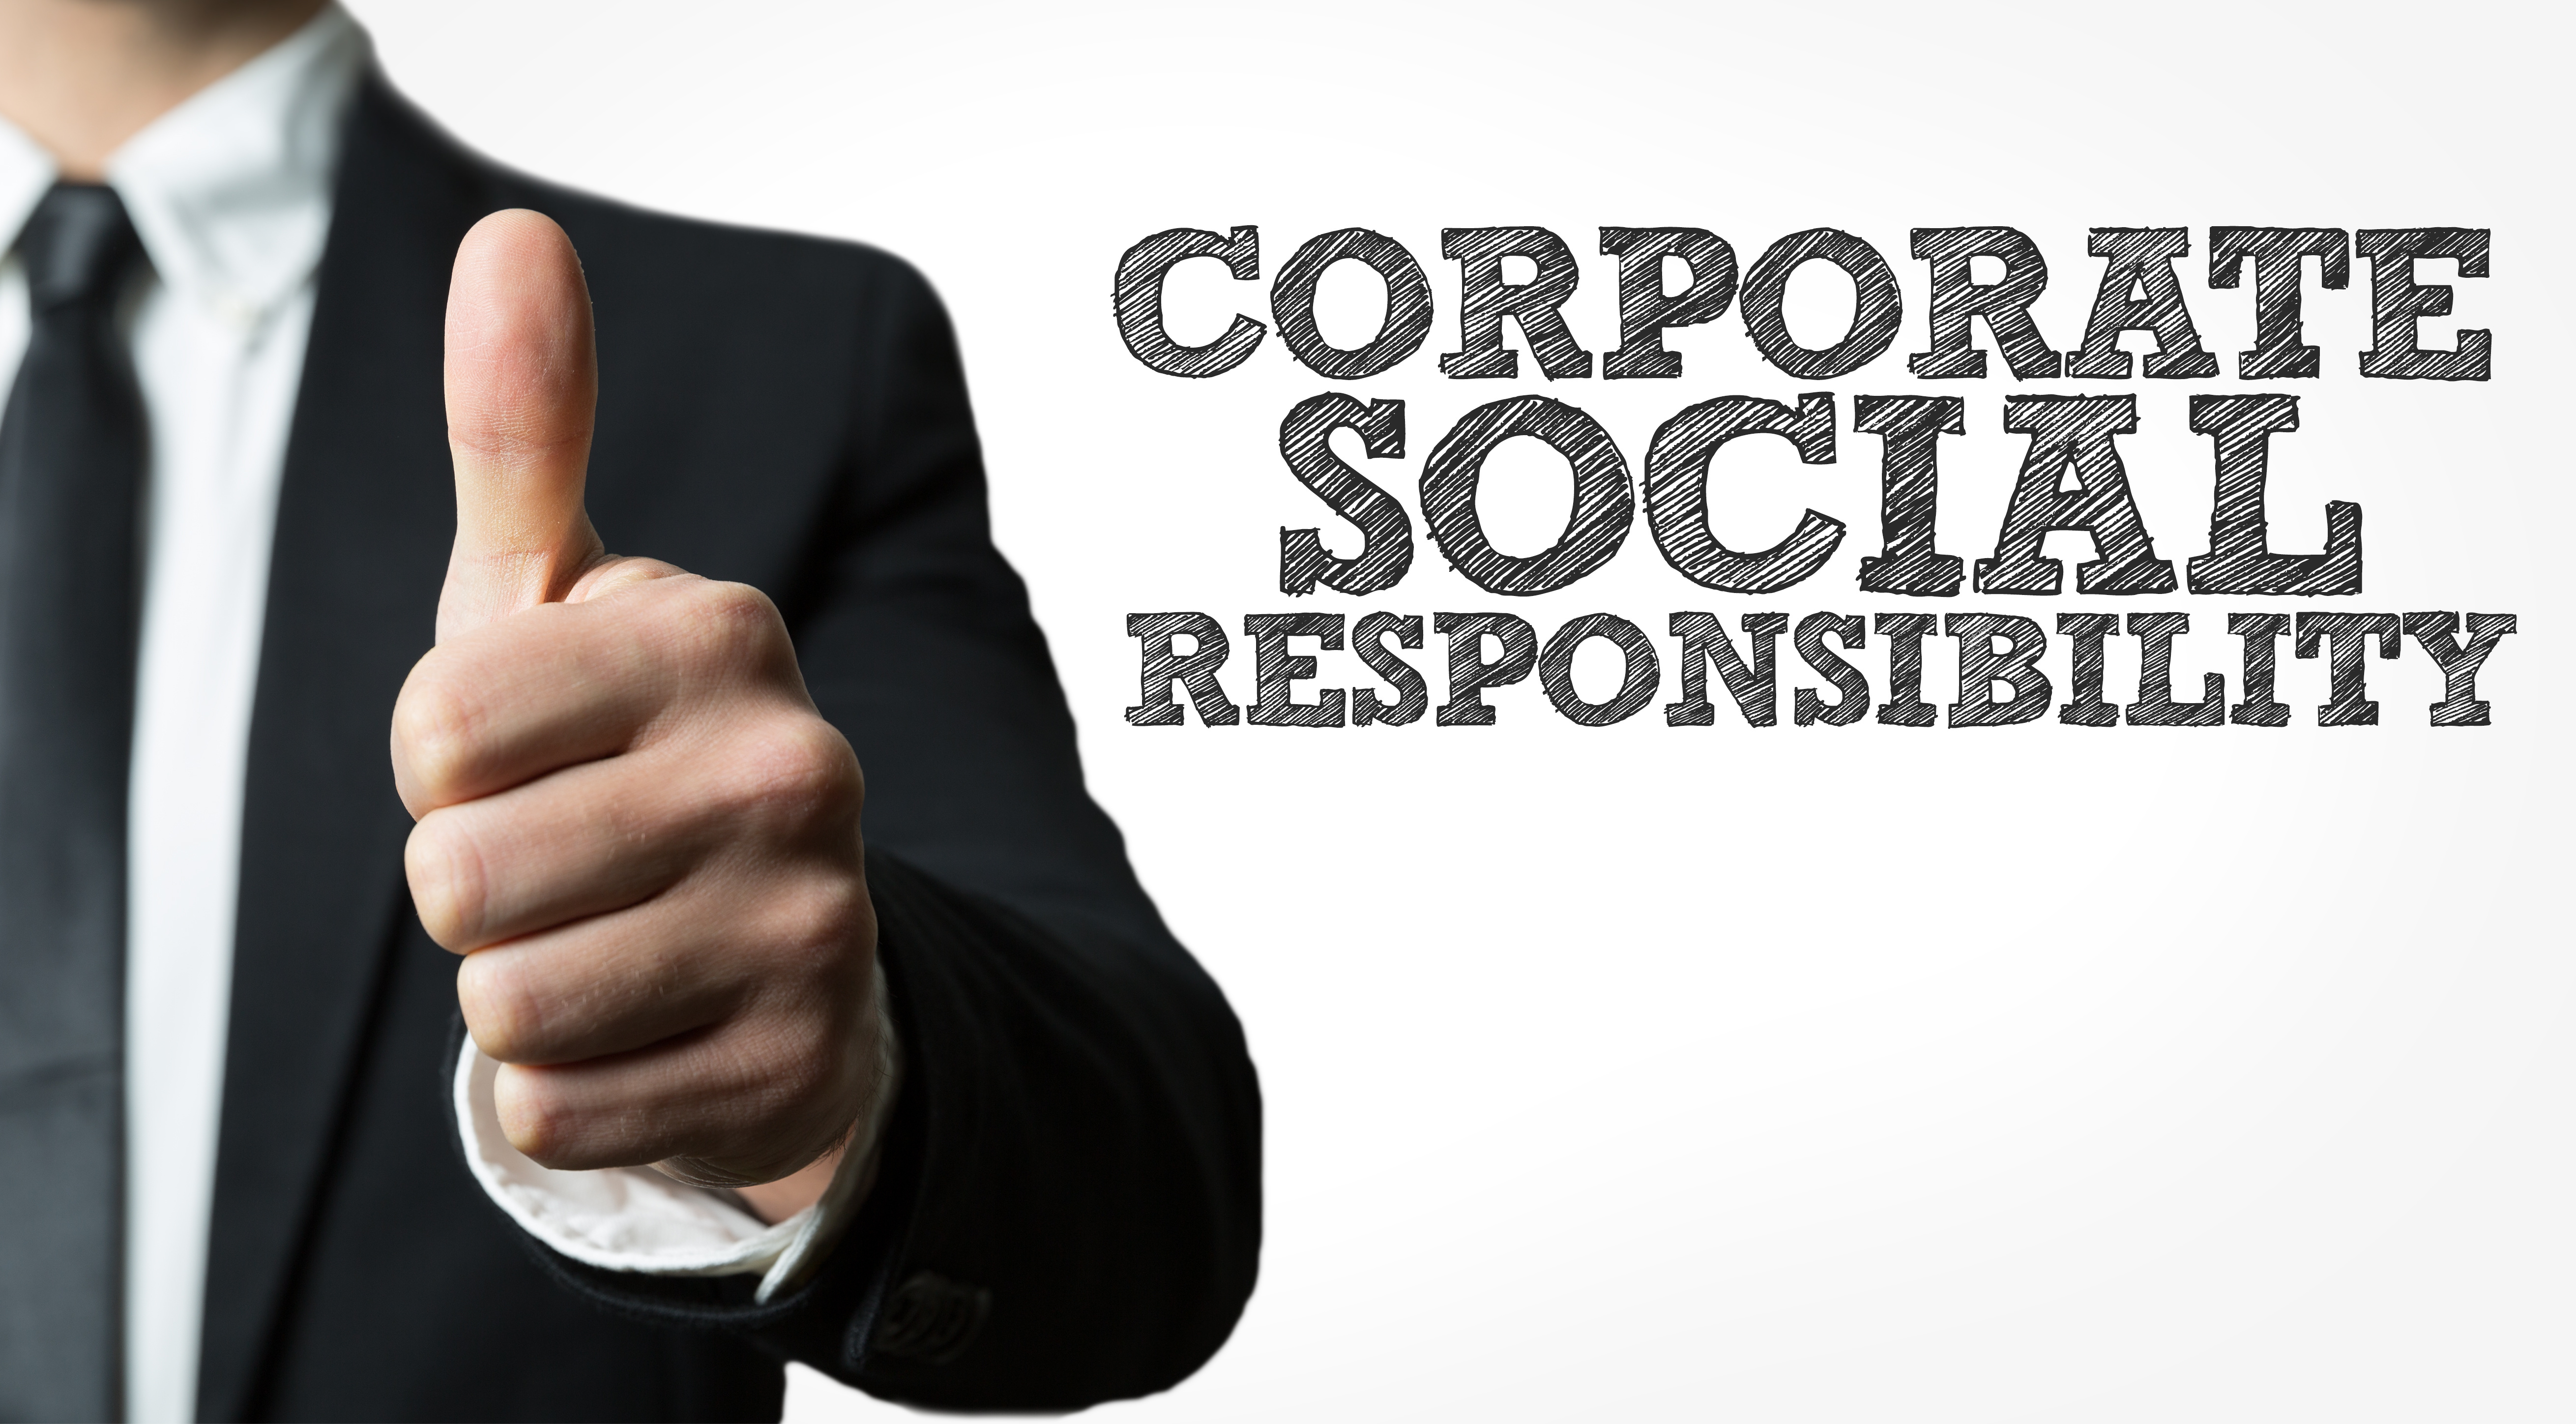 CEOs, evaluate your corporate social responsibility – don't end it